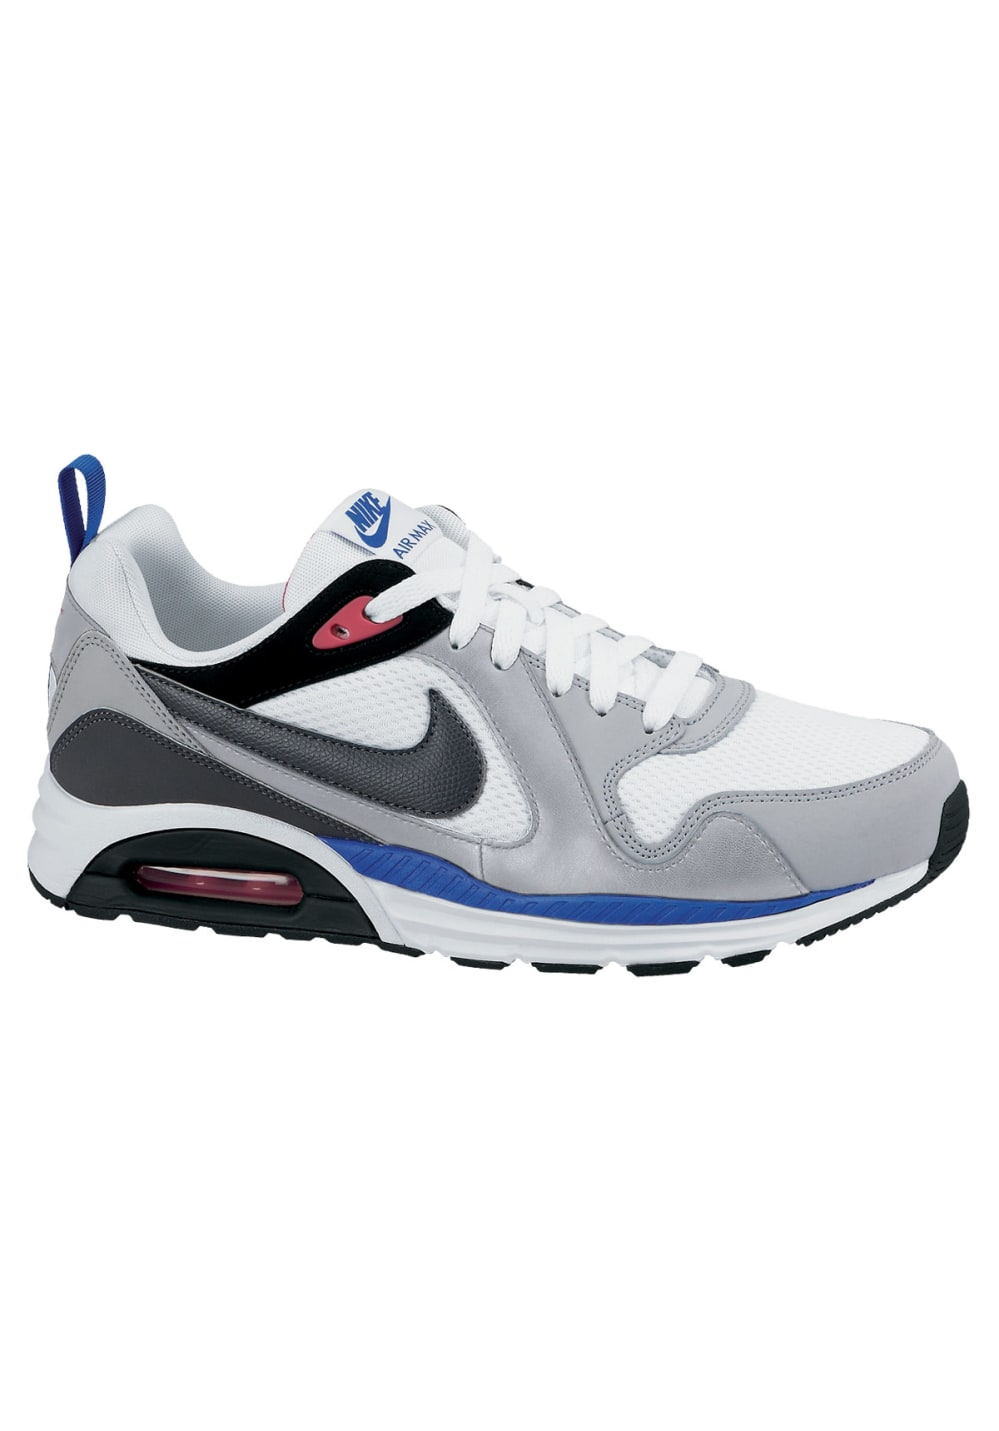 offer discounts online store clearance sale Nike Air Max Trax - Sneaker for Men - Grey